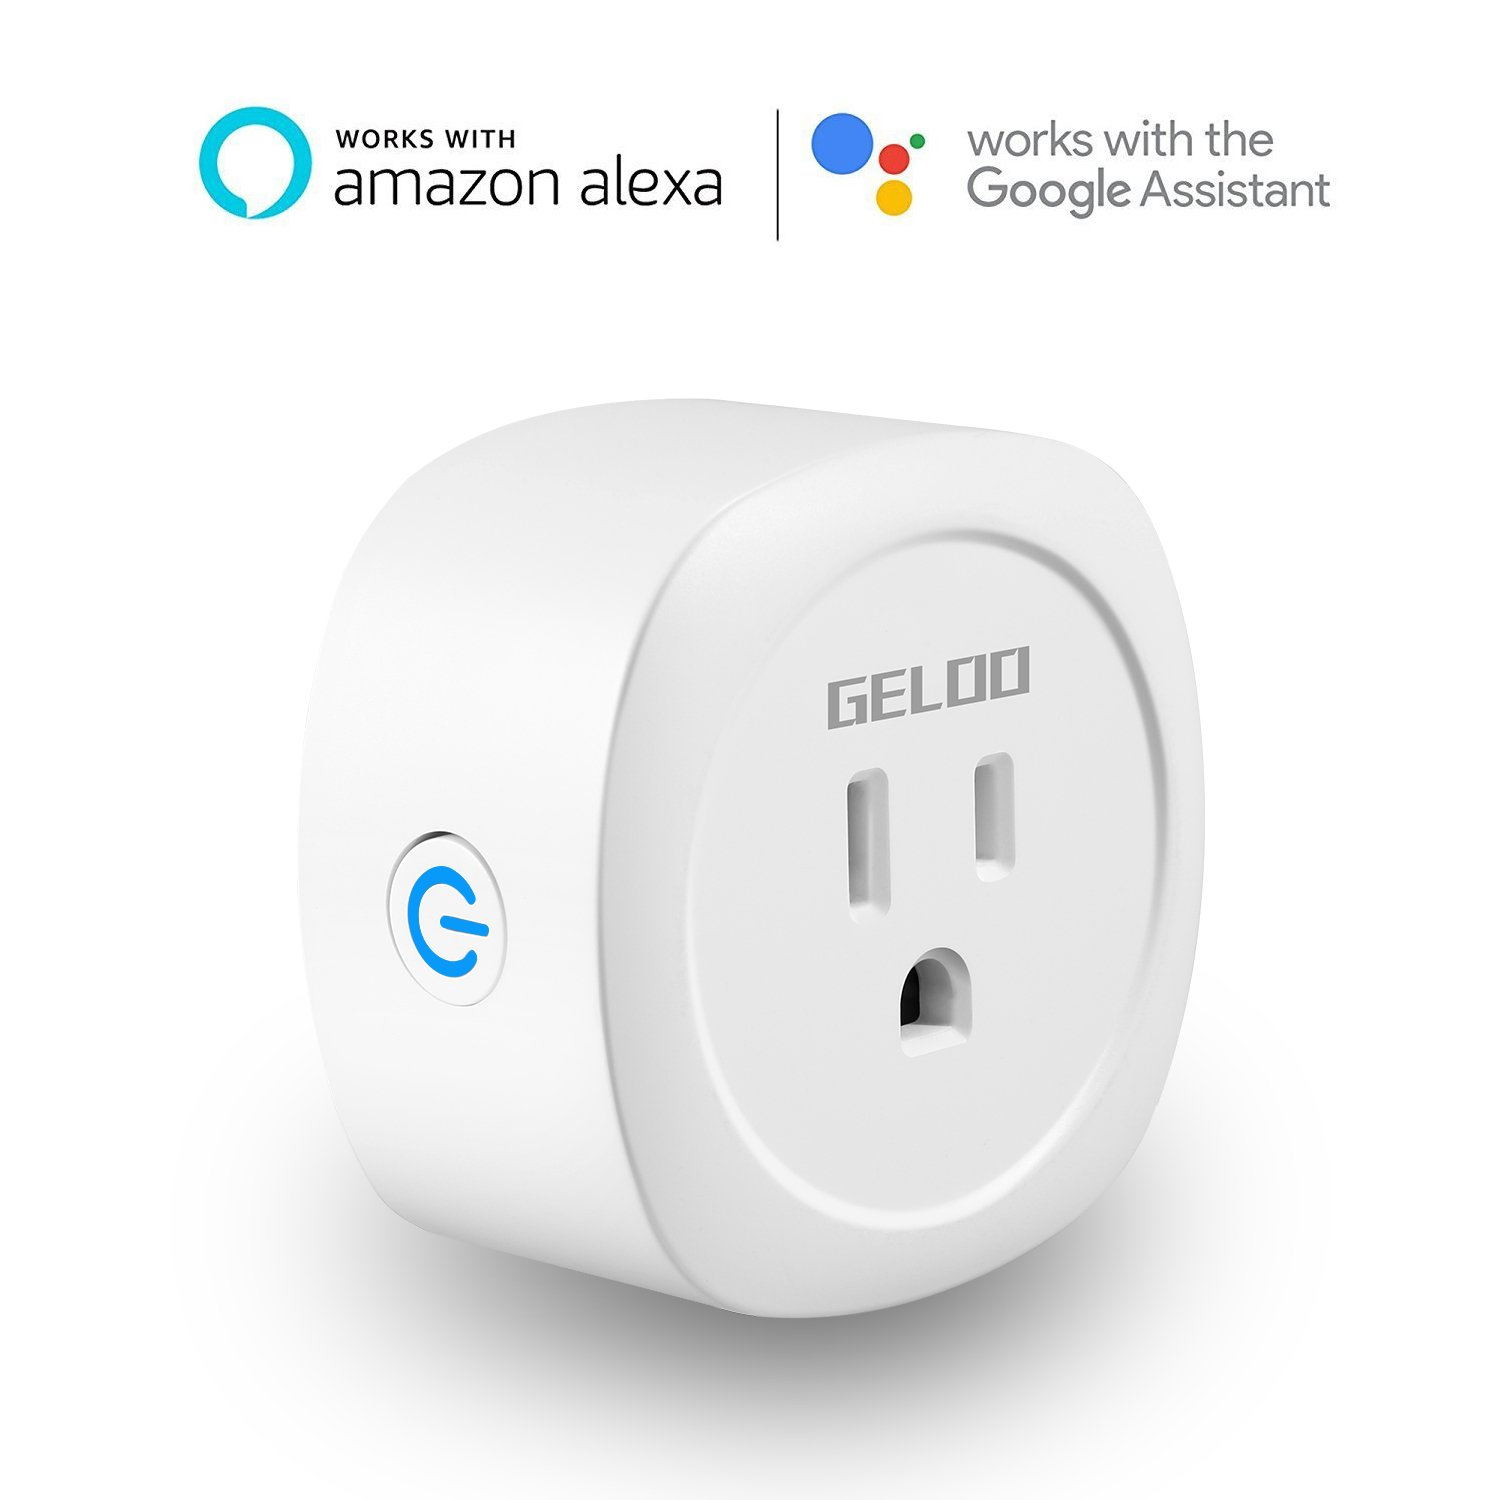 GELOO WiFi Smart Plug Mini Outlet, Alexa Plug Smart Socket with Energy Monitoring, Control your Devices from Anywhere, No Hub Required, Works with Alexa, Google Home and IFTTT